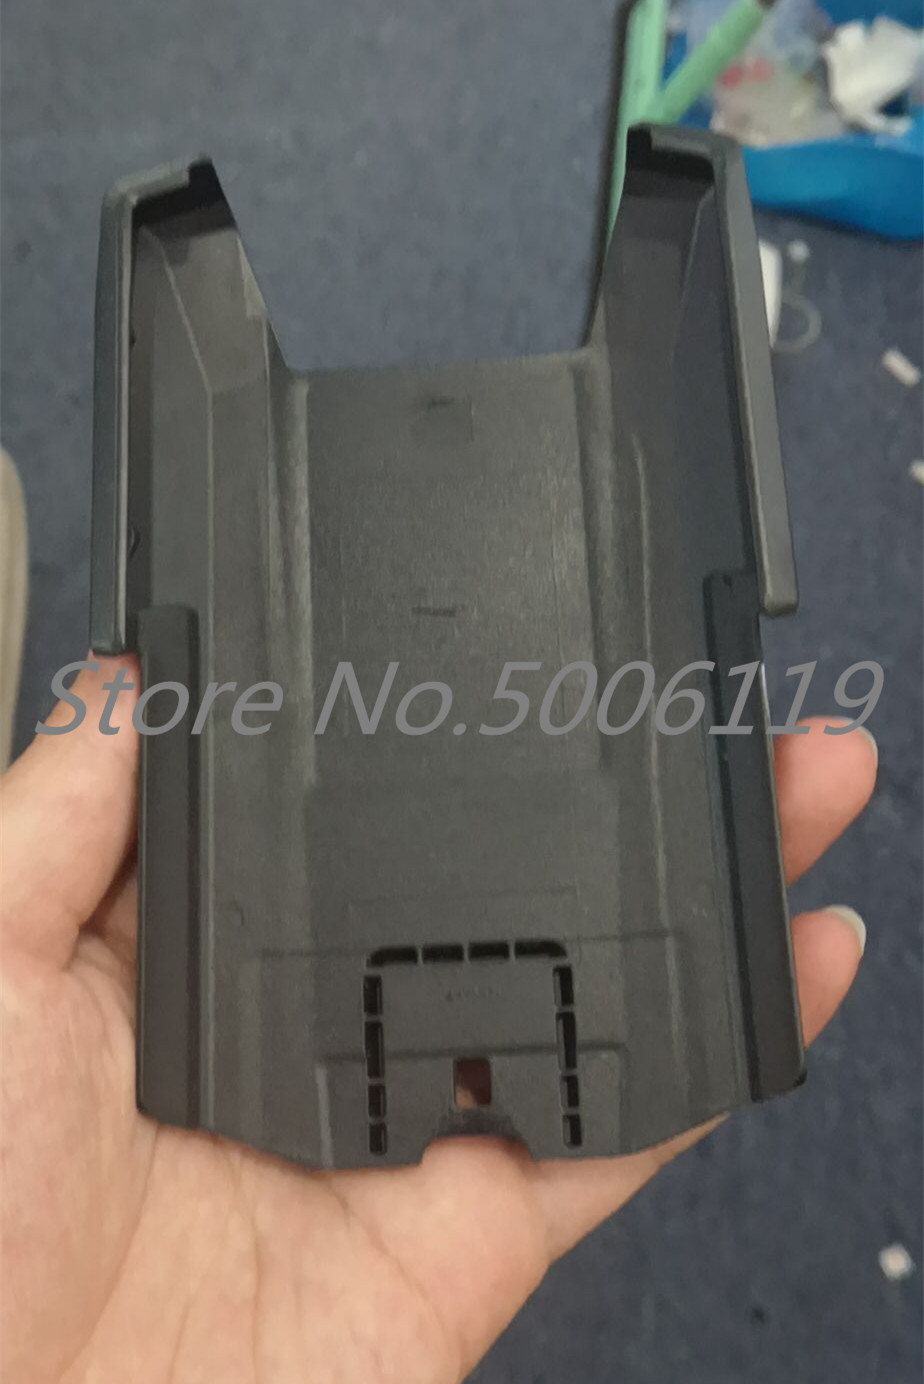 Dock-Case-Cover Cell-Phone-Back-Holder Housings New for DOOGEE S80-Lite